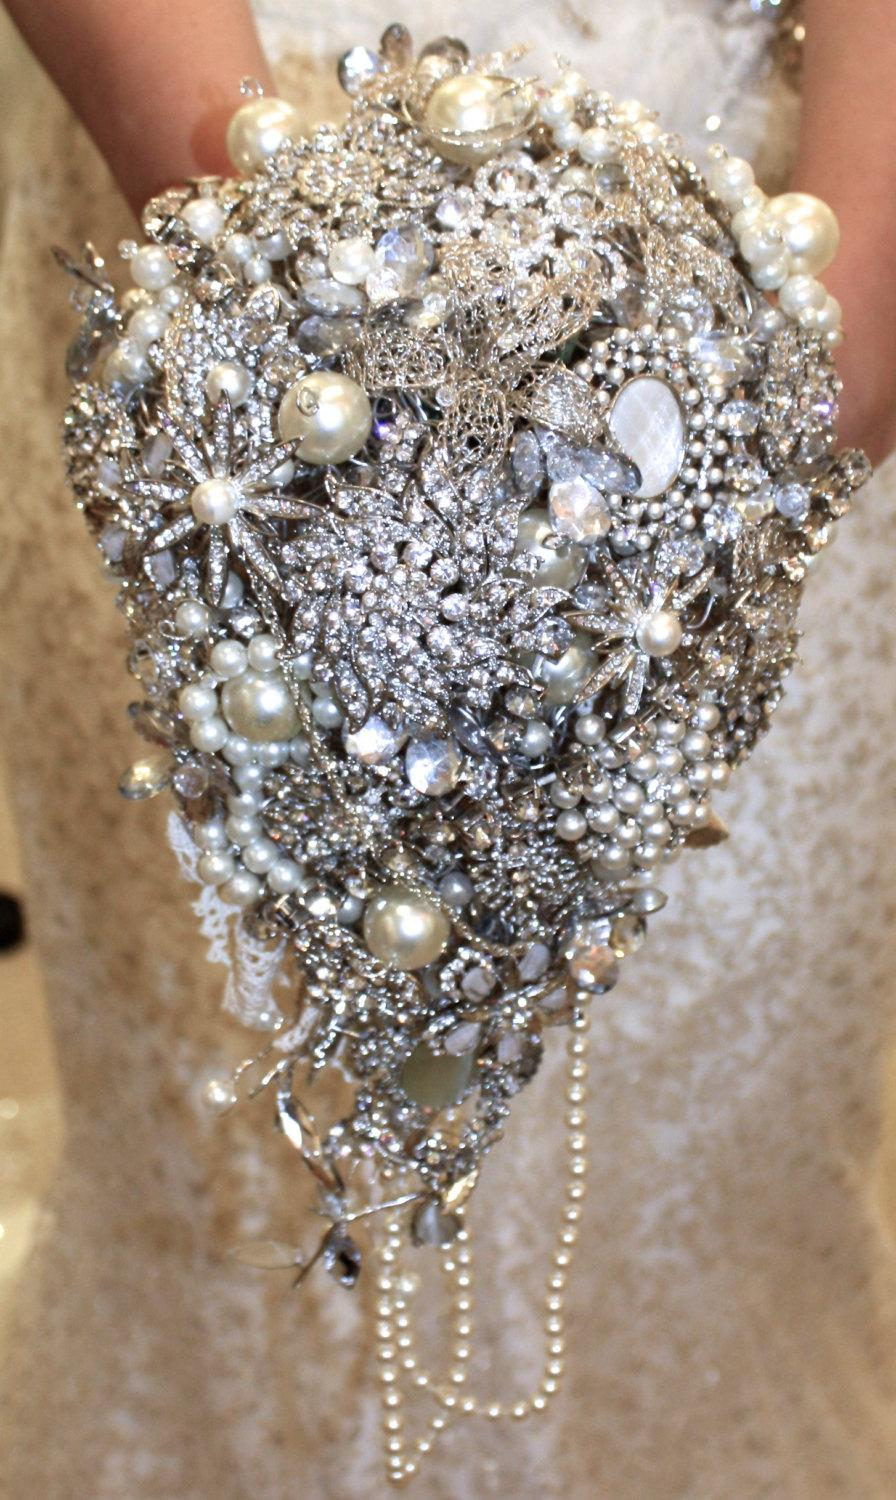 Mariage - Large handmade bespoke trailing diamante bridal brooch bouquet